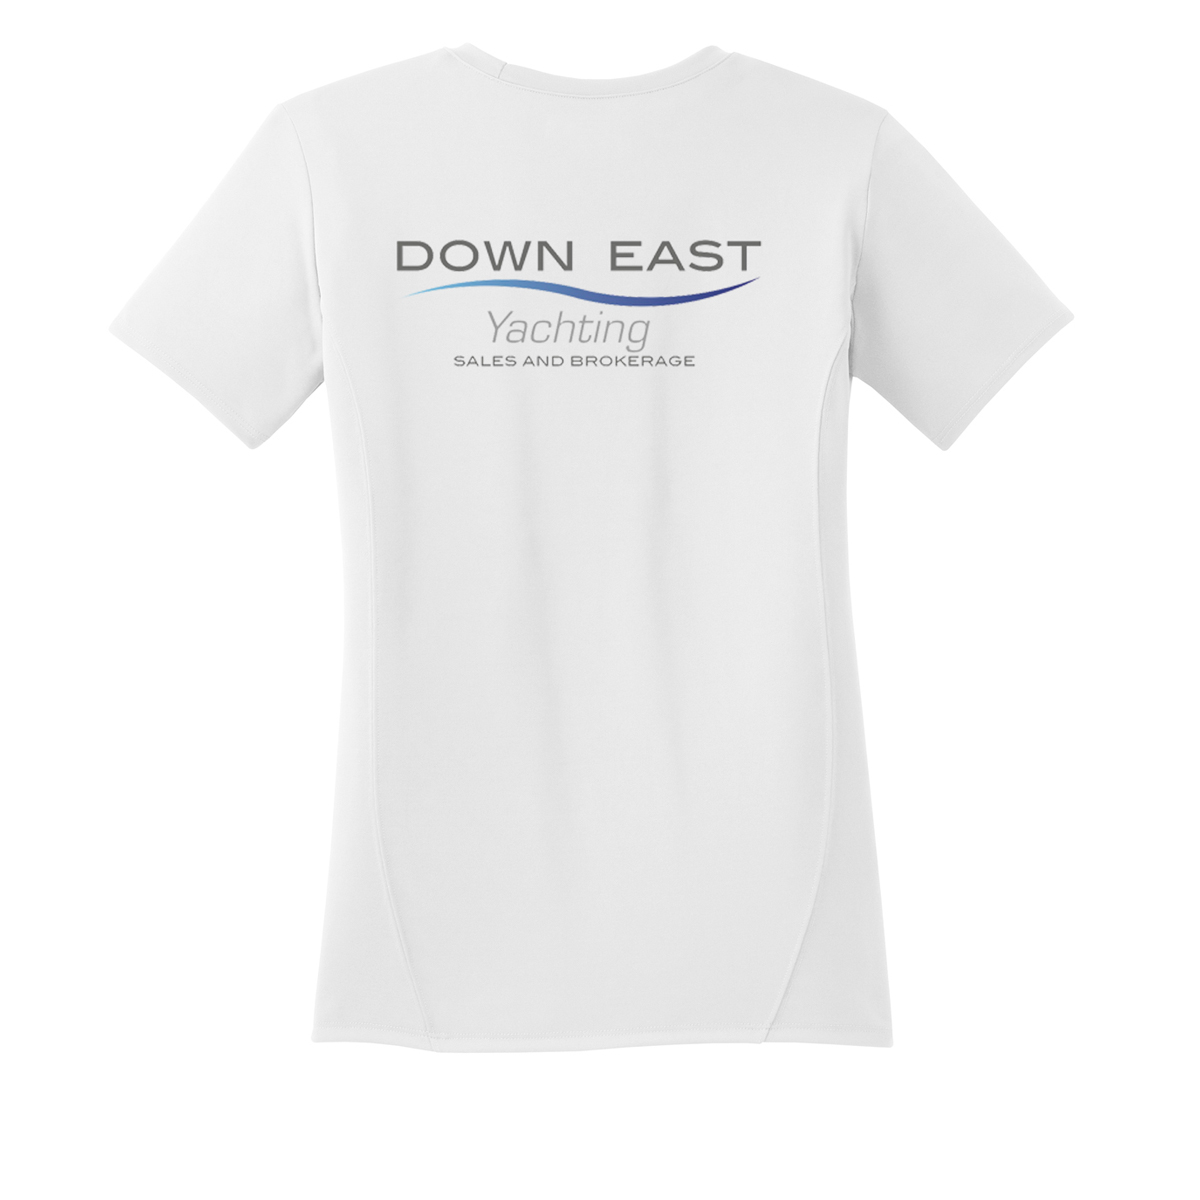 Down East Yachting - Women's Tech Tee S/S